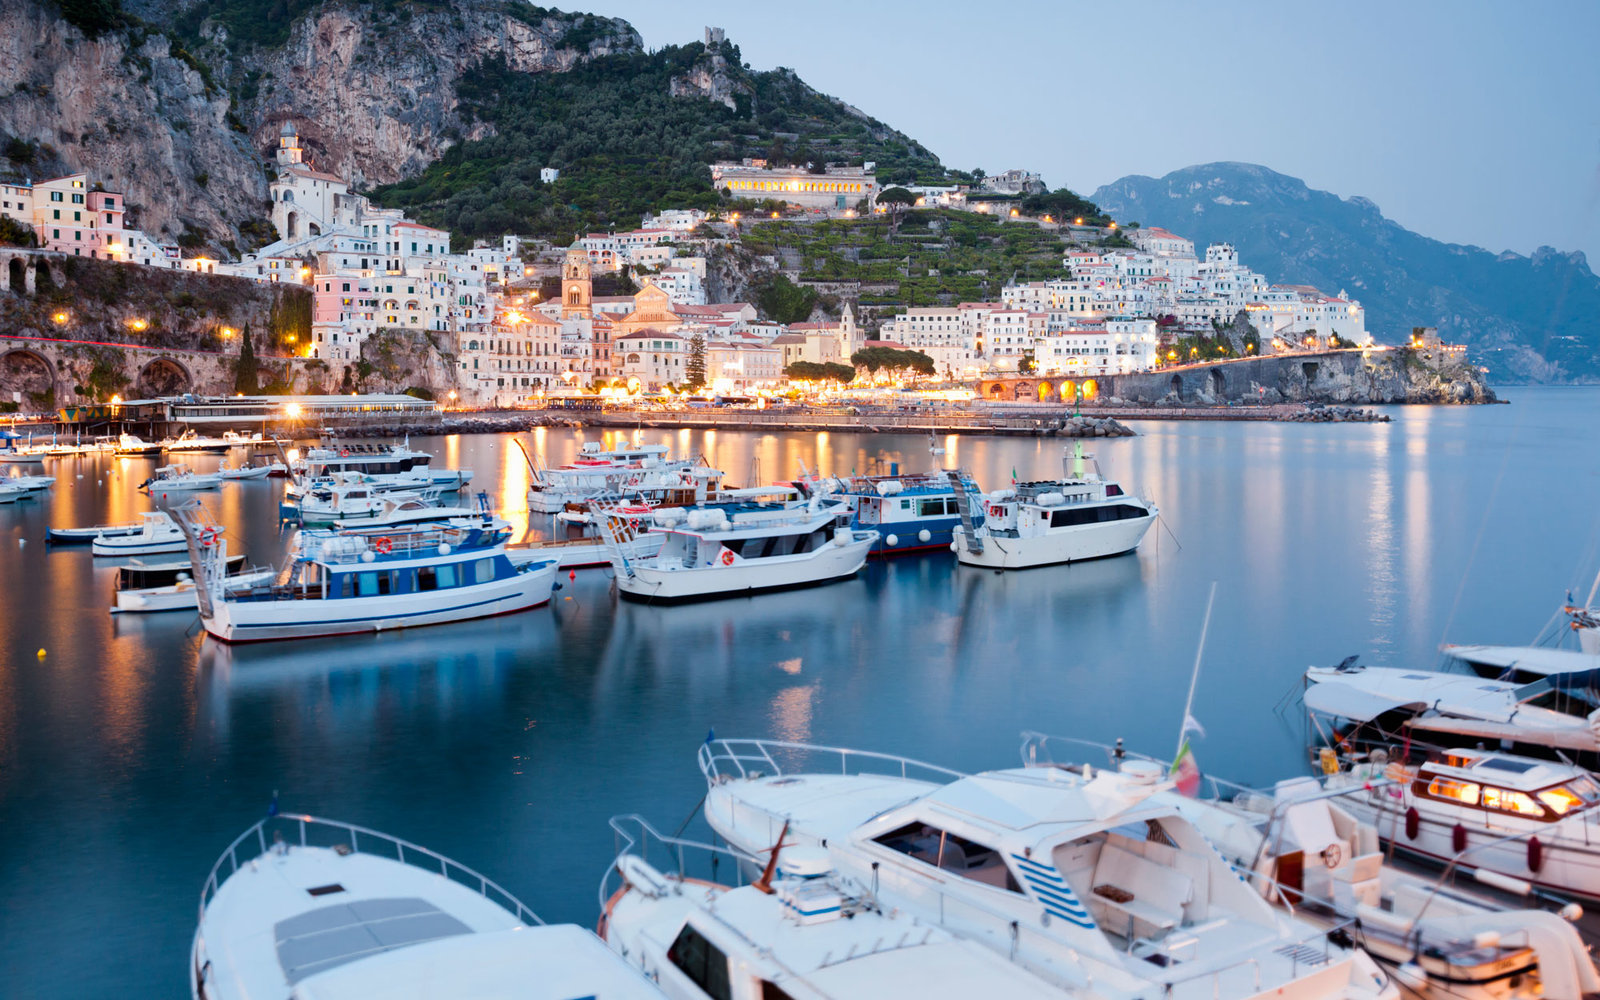 Amalfi Port at Dusk